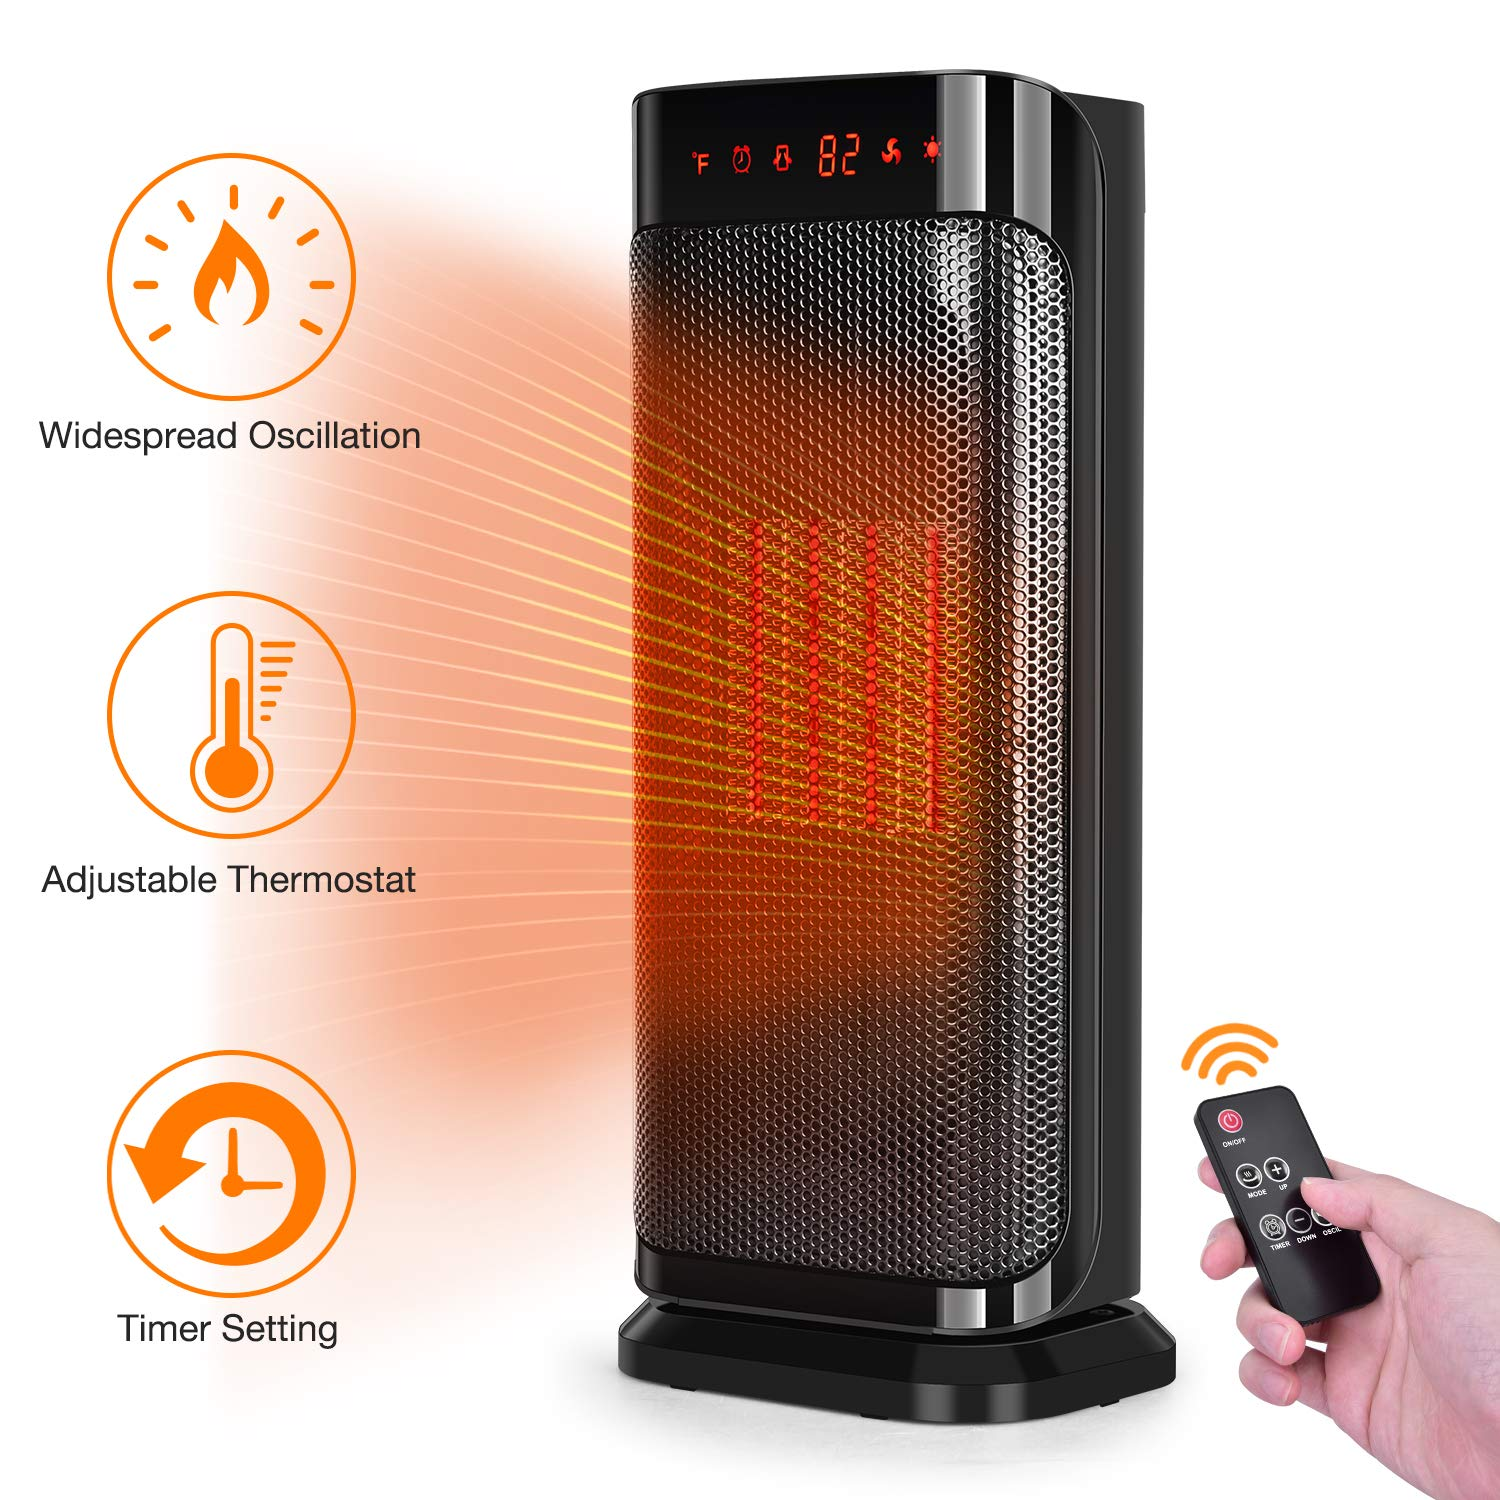 TRUSTECH Electric Space, 750W 1500W Fast Heating Portable Oscillating Ceramic Tower Heater